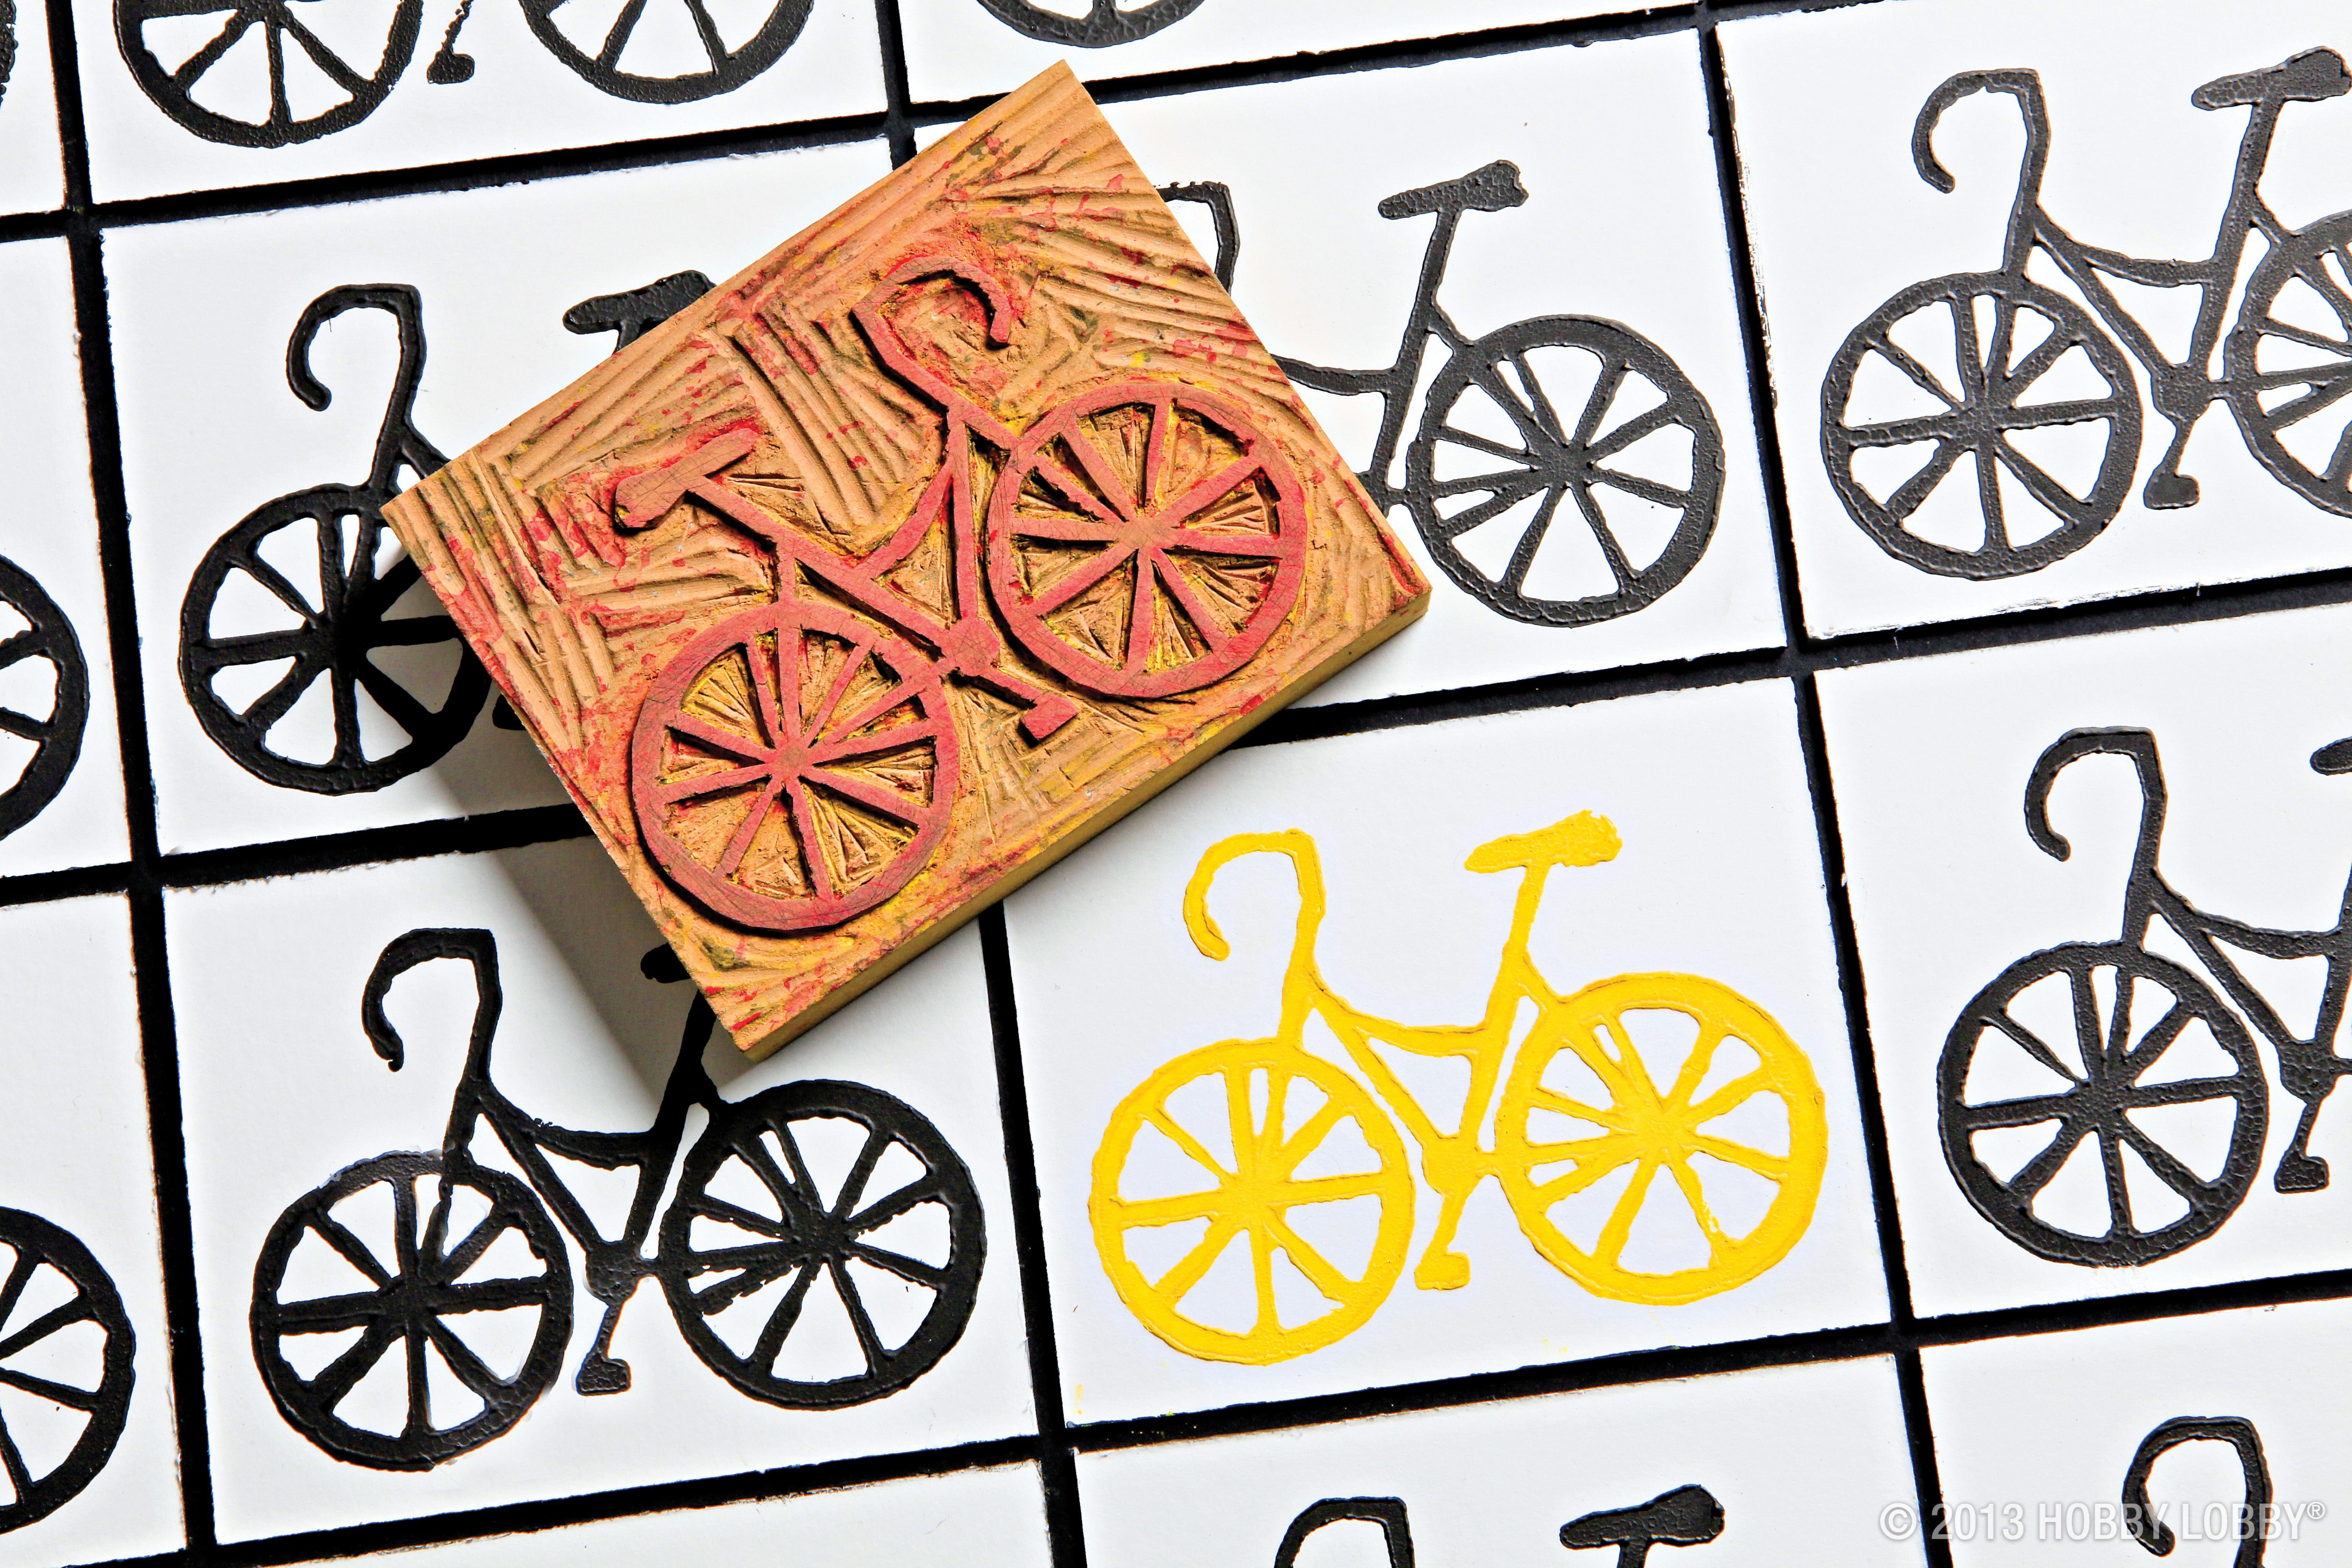 Carve a handmade stamp block for DIY art projects that show off your quirky sense of style!